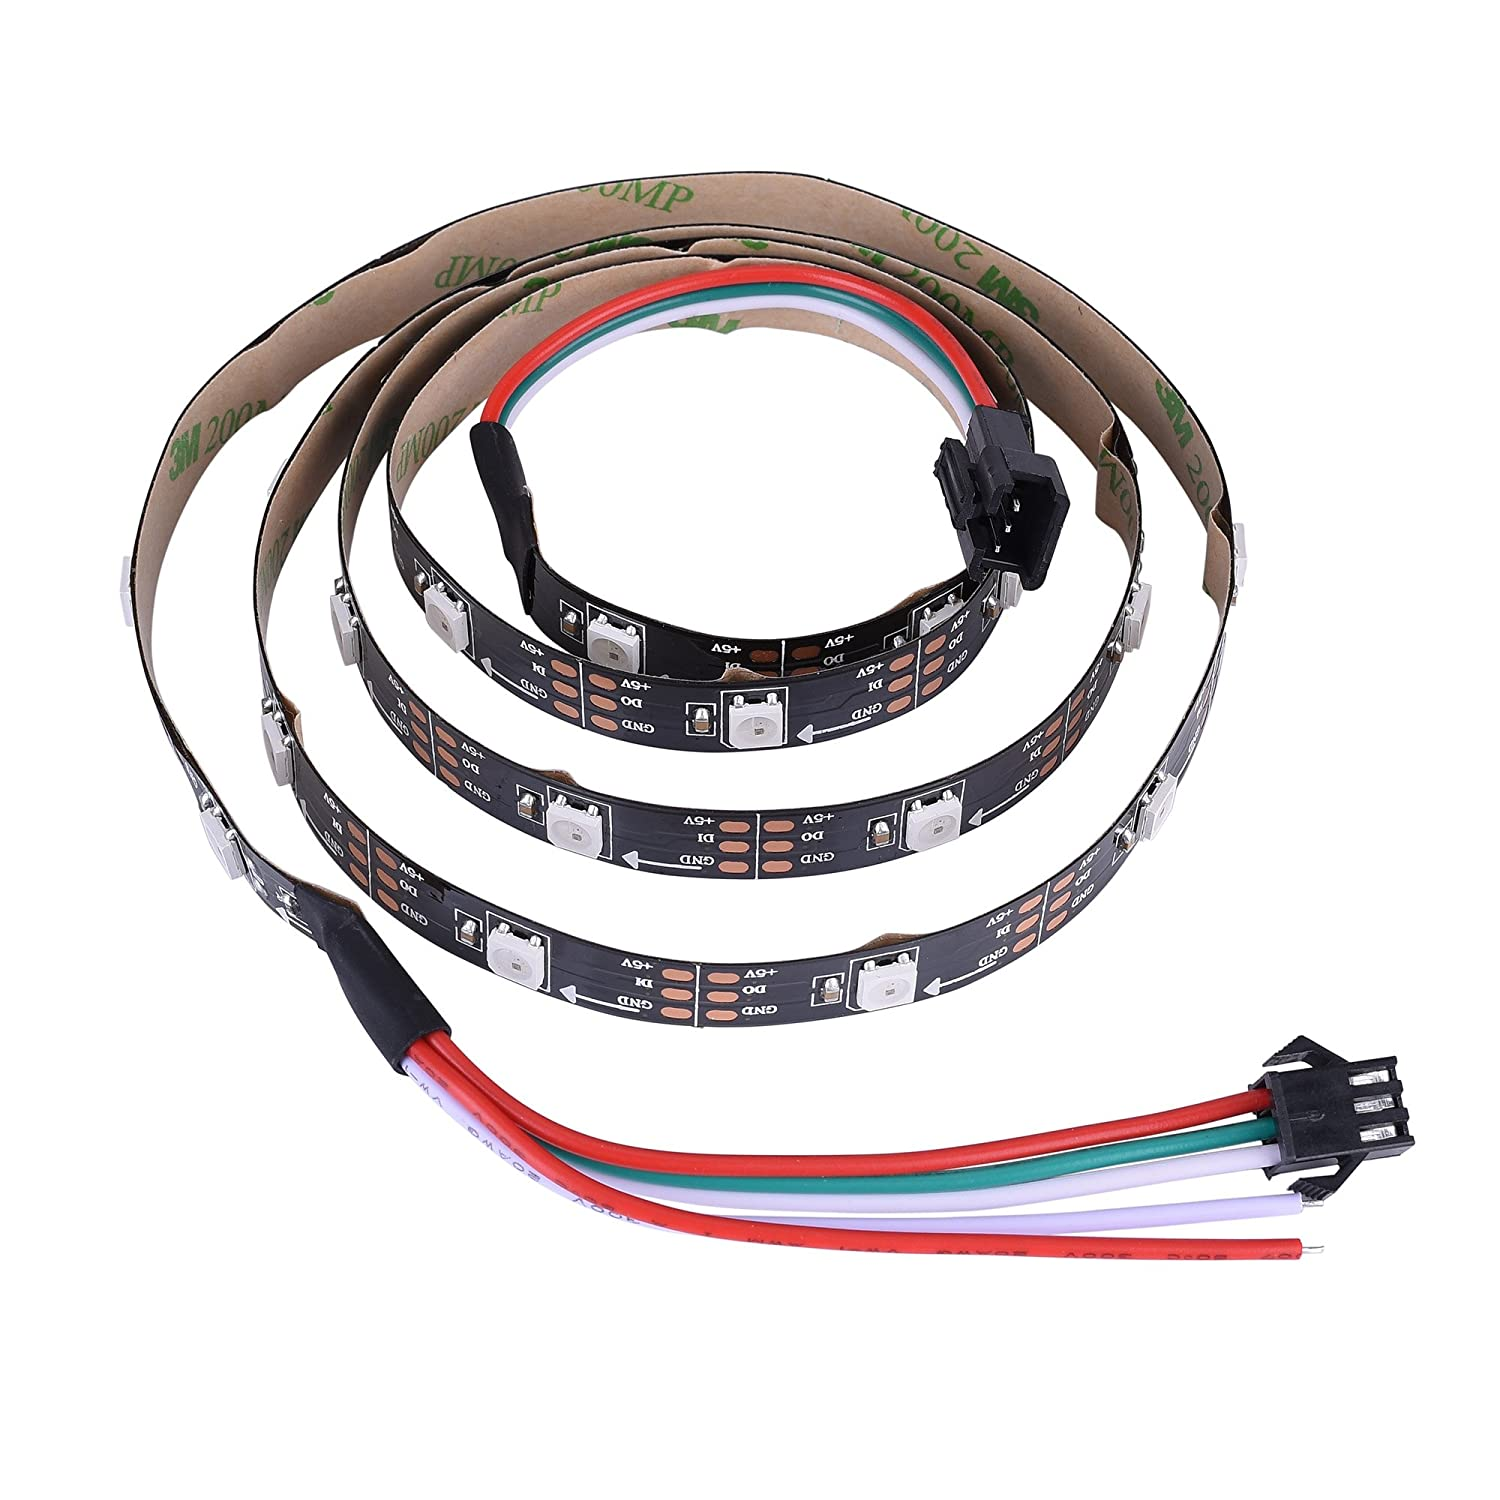 Amazon.com : INVOLT WS2812B LED Strip Addressable Programmable 30LED ...